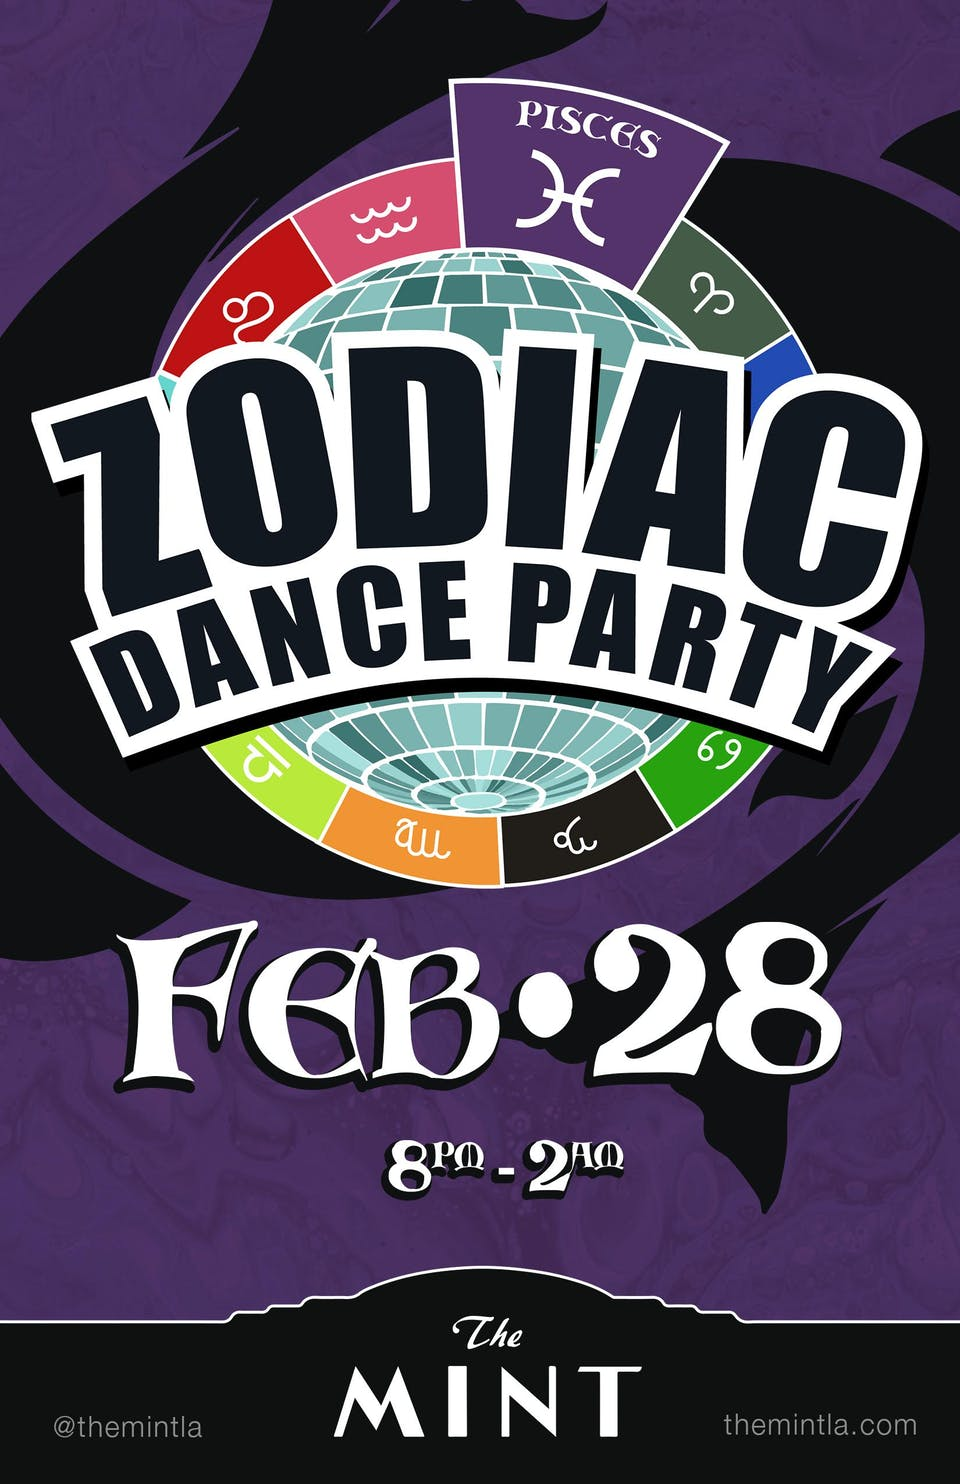 ZODIAC DANCE PARTY, Celebrating Pisces!  FREE TACOS  + 1/2 OFF DRINKS 8-9pm